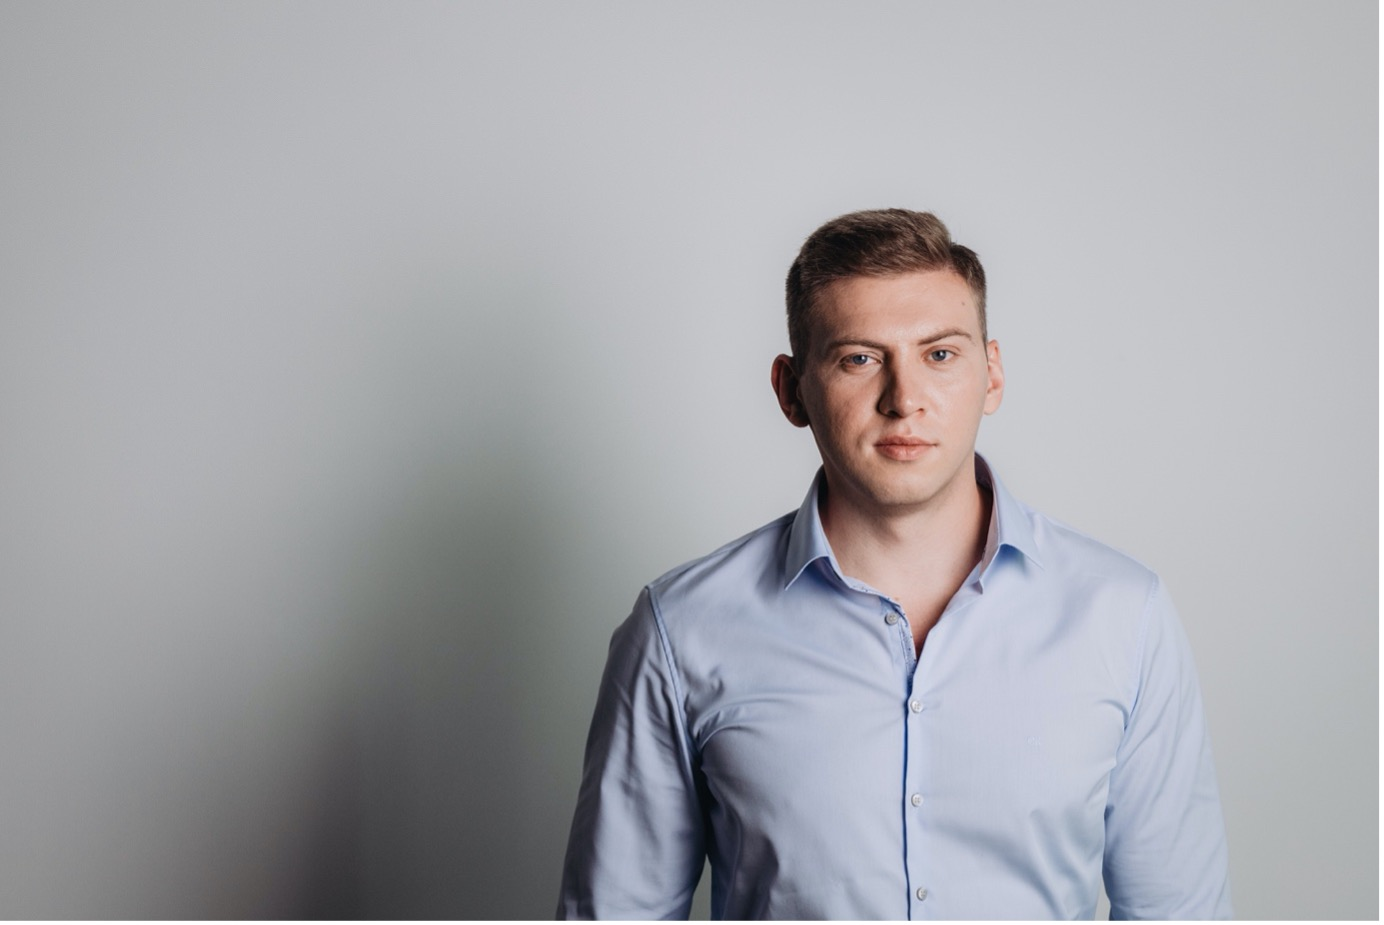 Secrets of the startup analysis from Adventures Lab and its founder Ruslan Tymofieiev (Ruslan Timofeev)